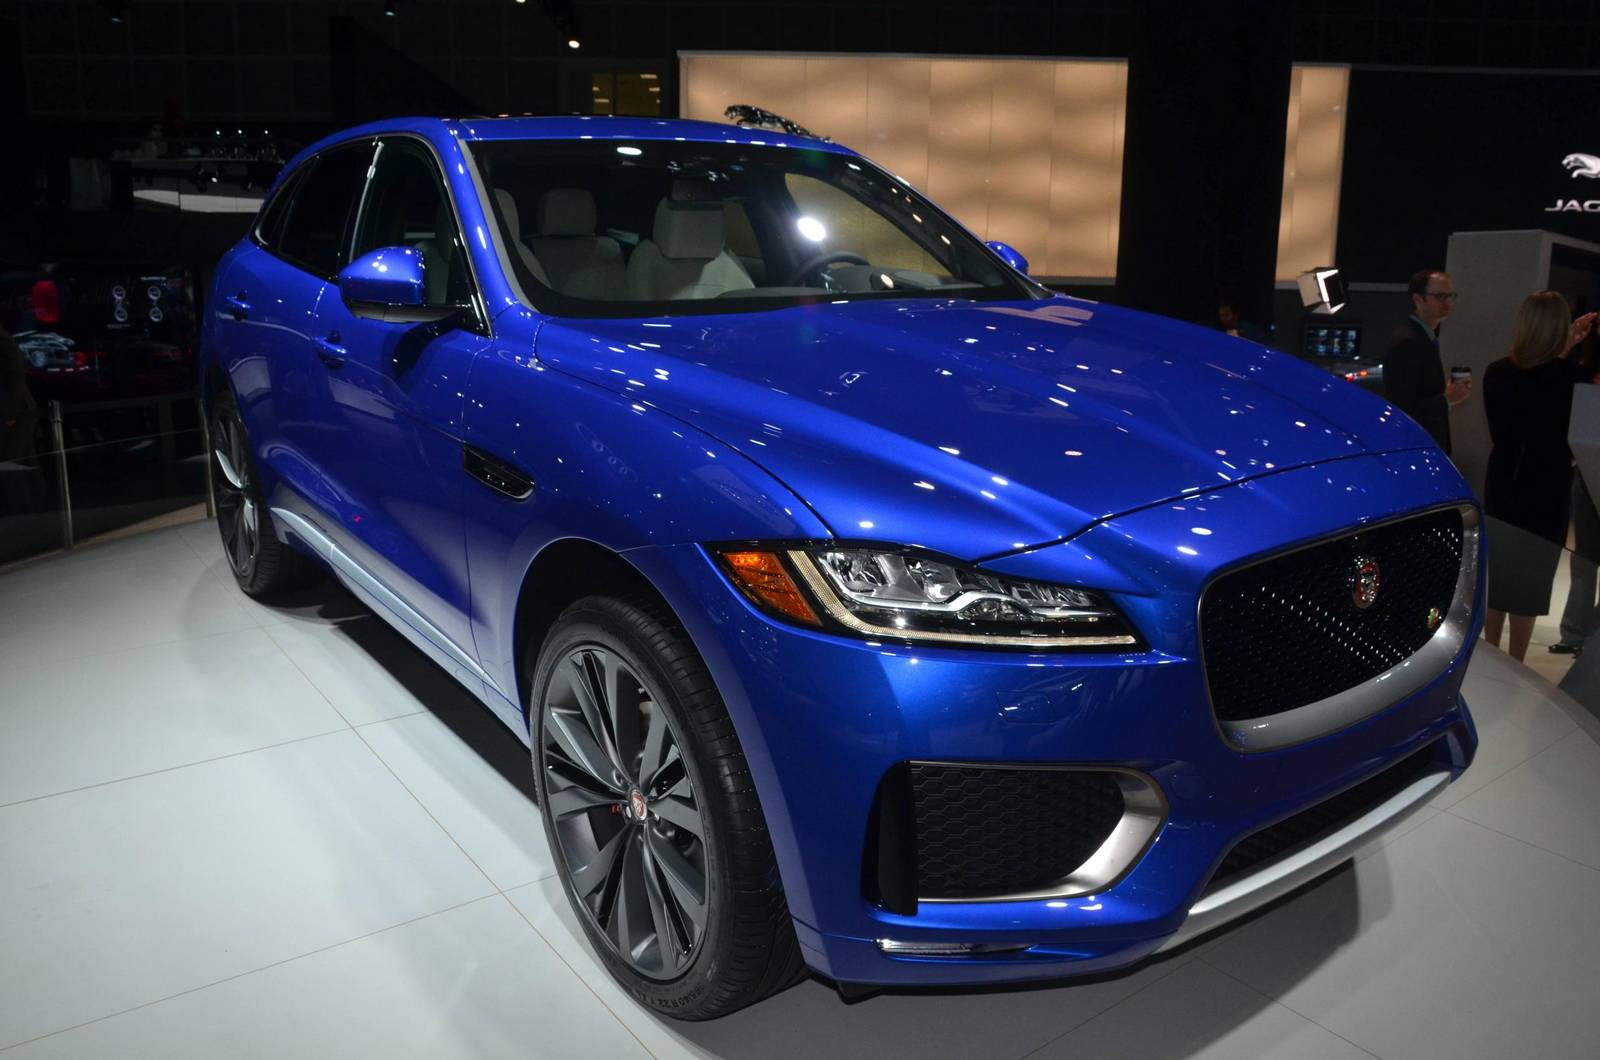 3 Powertrain Models Of Jaguar F-Pace 7